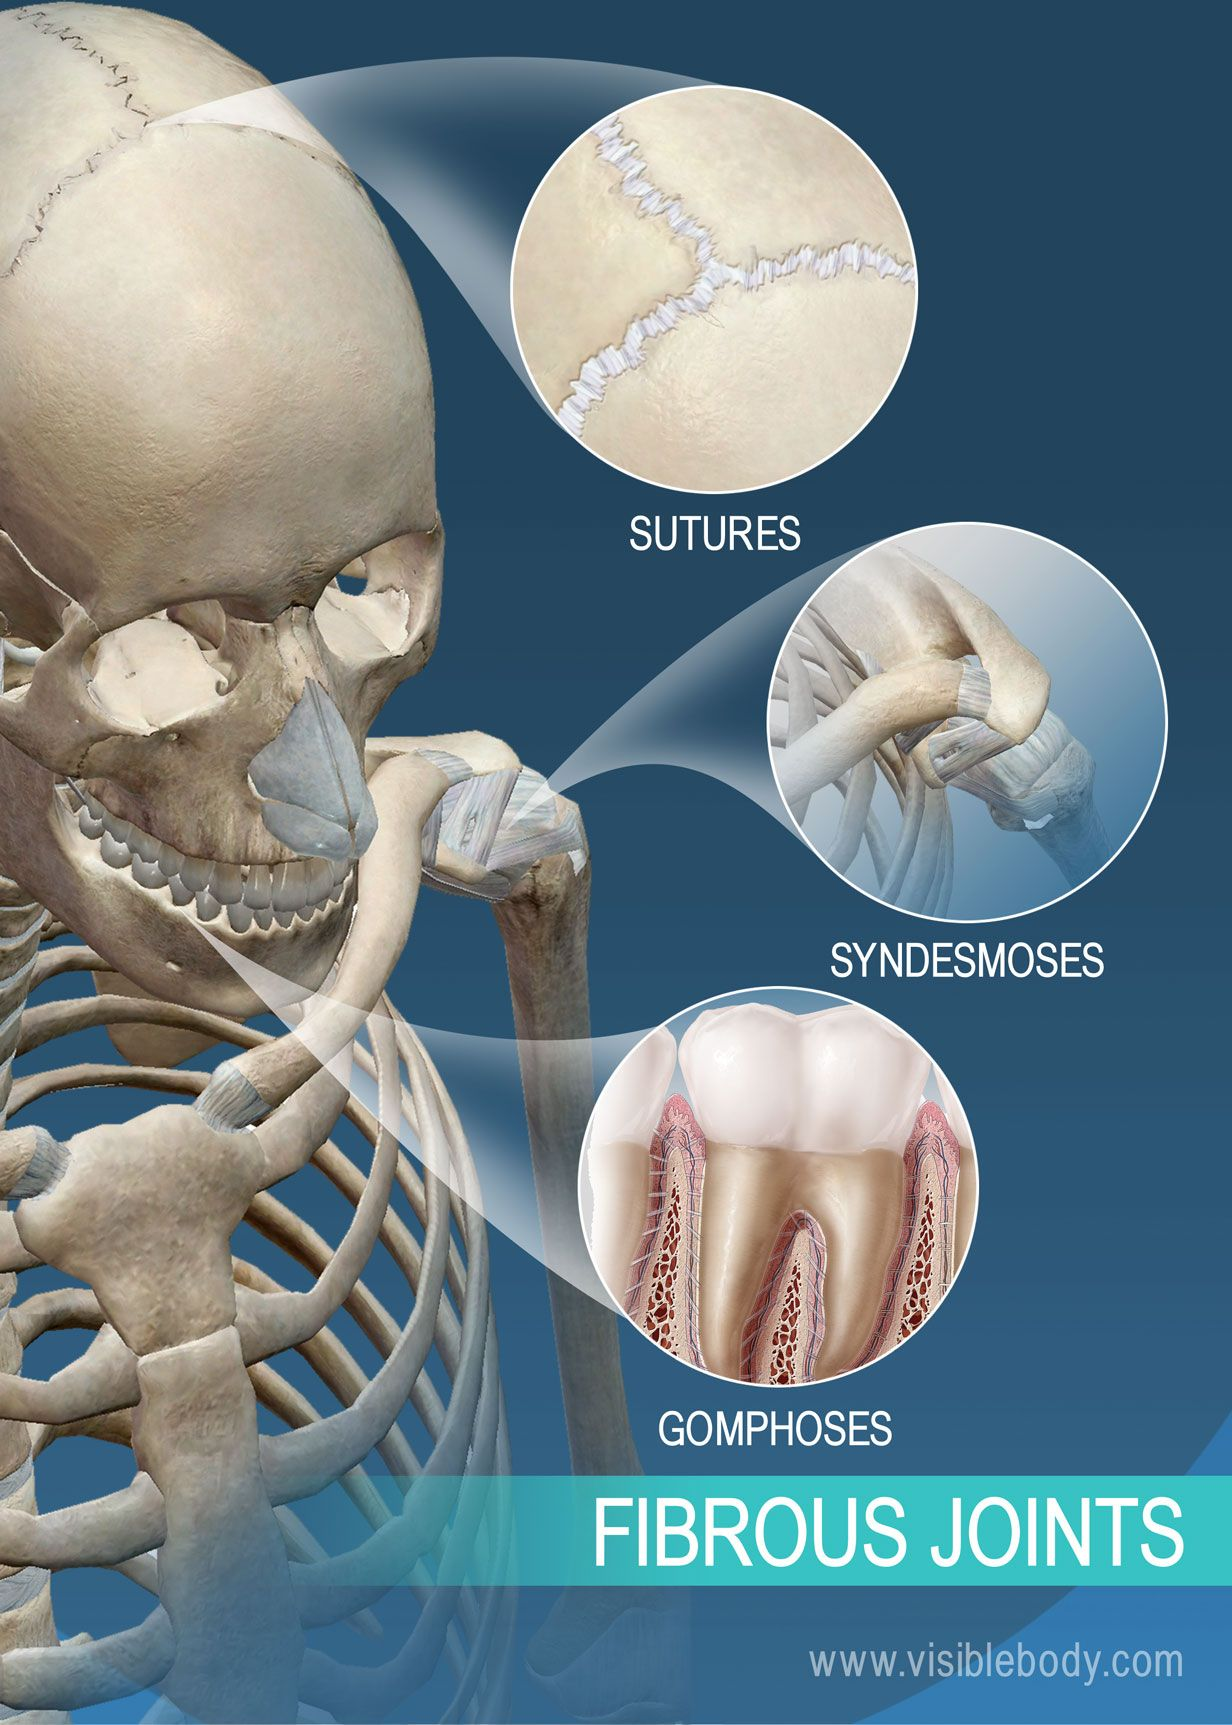 Sutures  syndesmoses  and gomphoses  fibrous joints